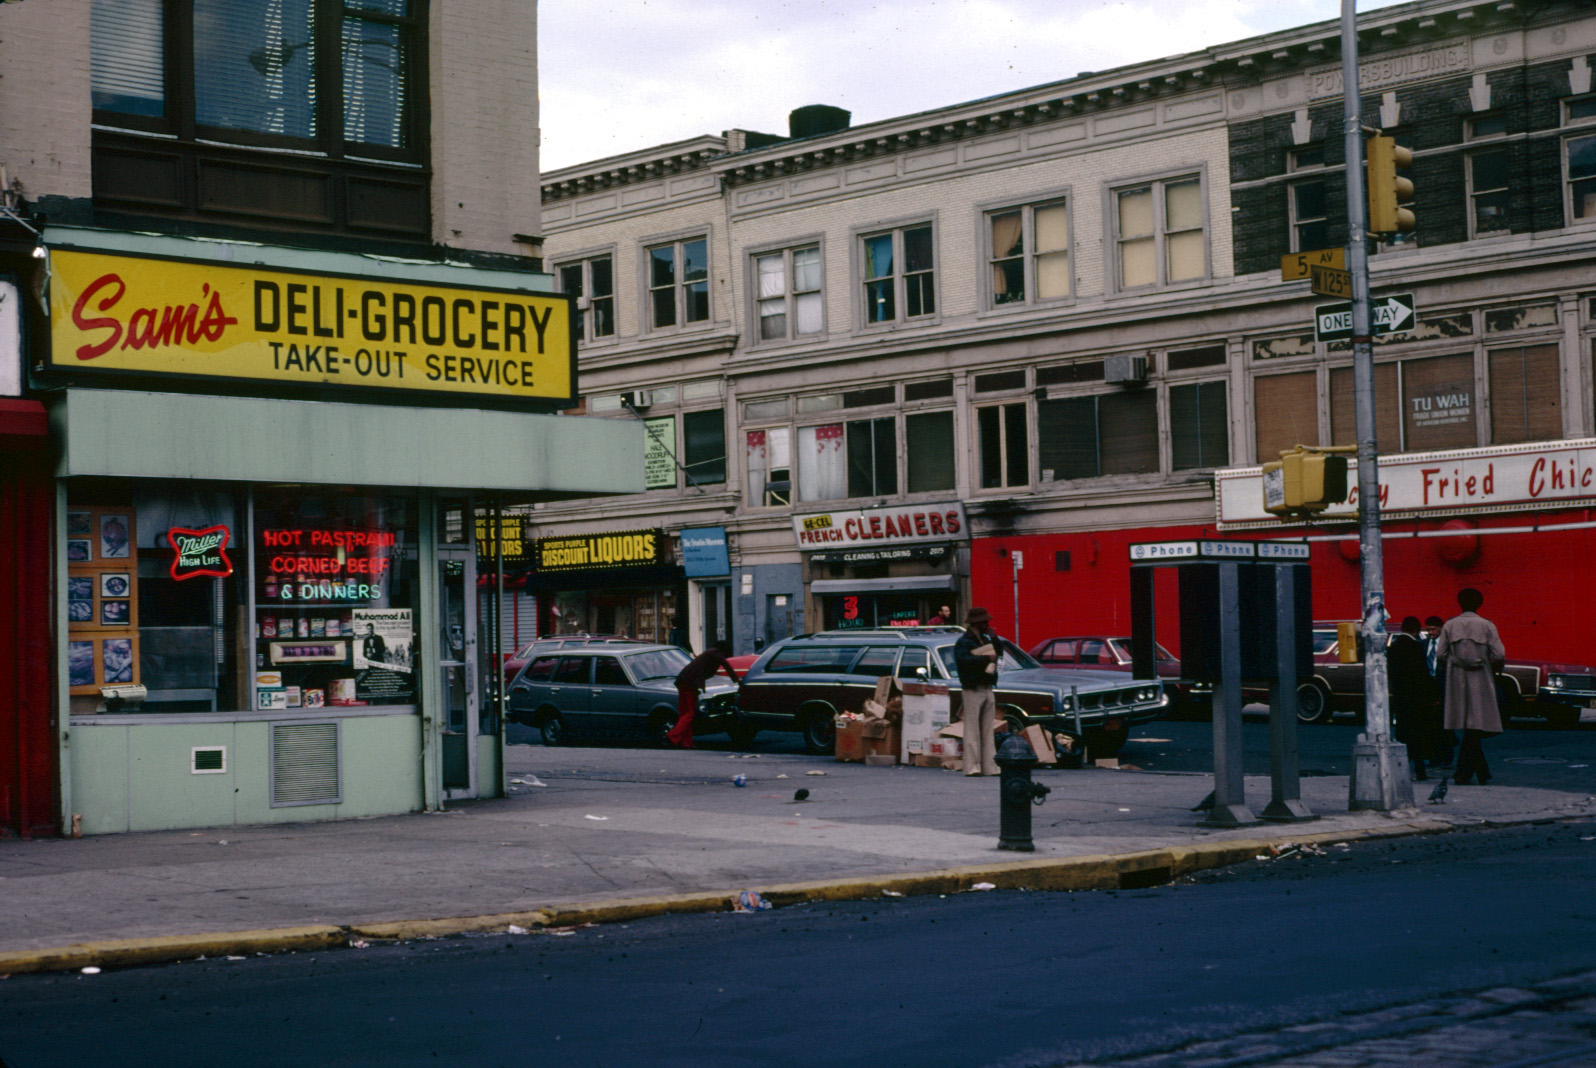 1979 New York City 5Av W125 St New York City Harlem April 1979. This was my last day in NYC. As I started to make my way to the airport, I drove through Harlem. I Took a picture each time I came to a red light.